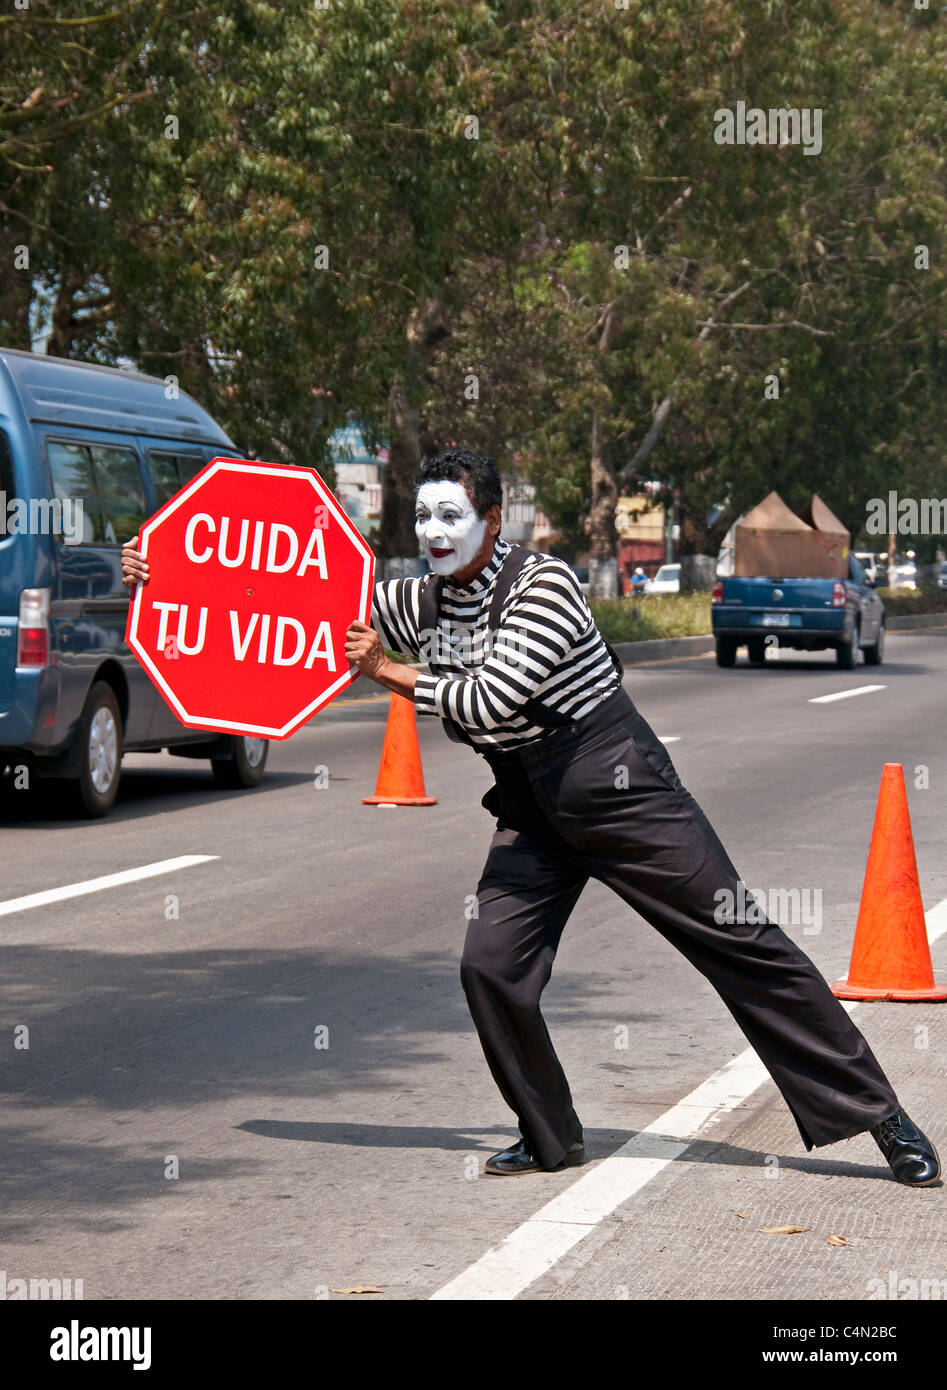 Mime on Guatemala City street with 'Take Care of Your Life' (Cuida tu Vida) sign promoting highway safety. - Stock Image